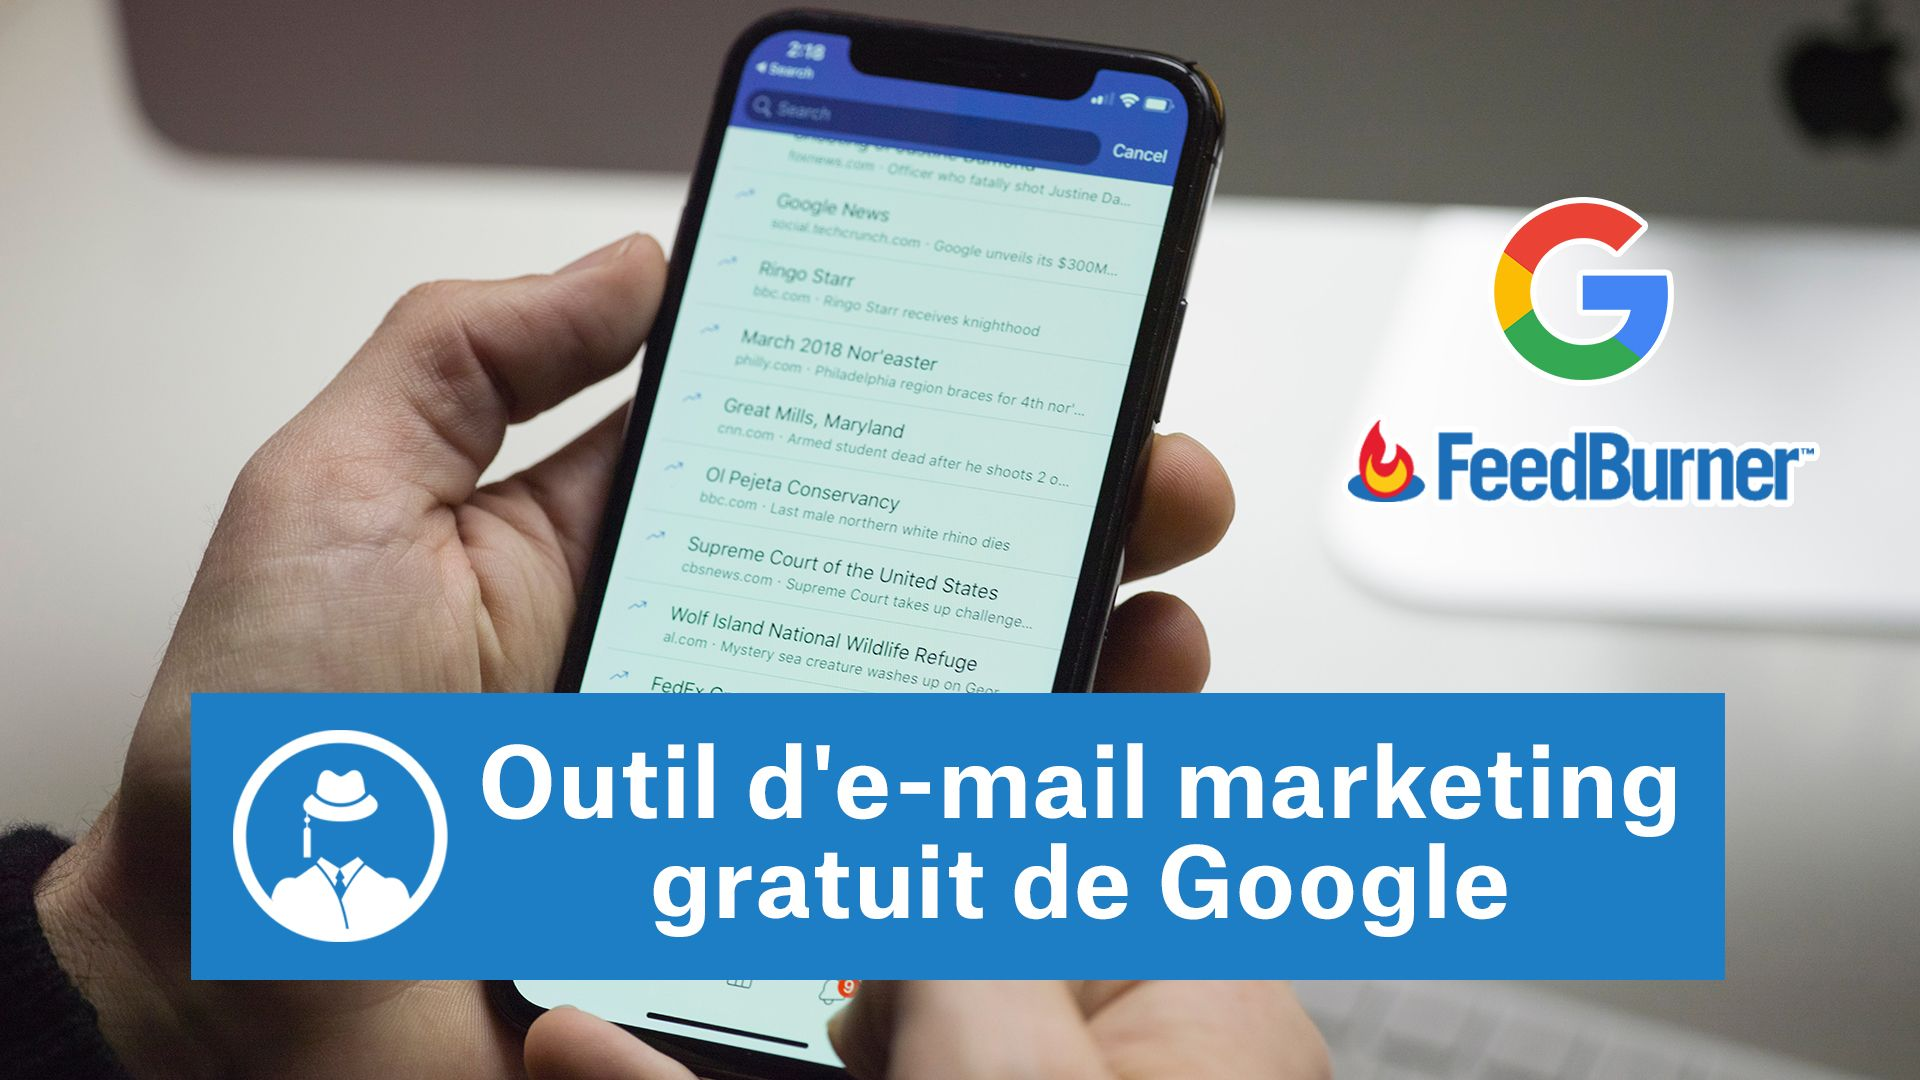 Outil d'e-mail marketing gratuit de Google #GrowthHacking #WebMarketing #FormationGrowthHacking #CentreDeFormationFrance #TunnelAARRR #AARRR #SocialMedia #CommunityManagement #SEO #MarketingDigital #SiteWeb